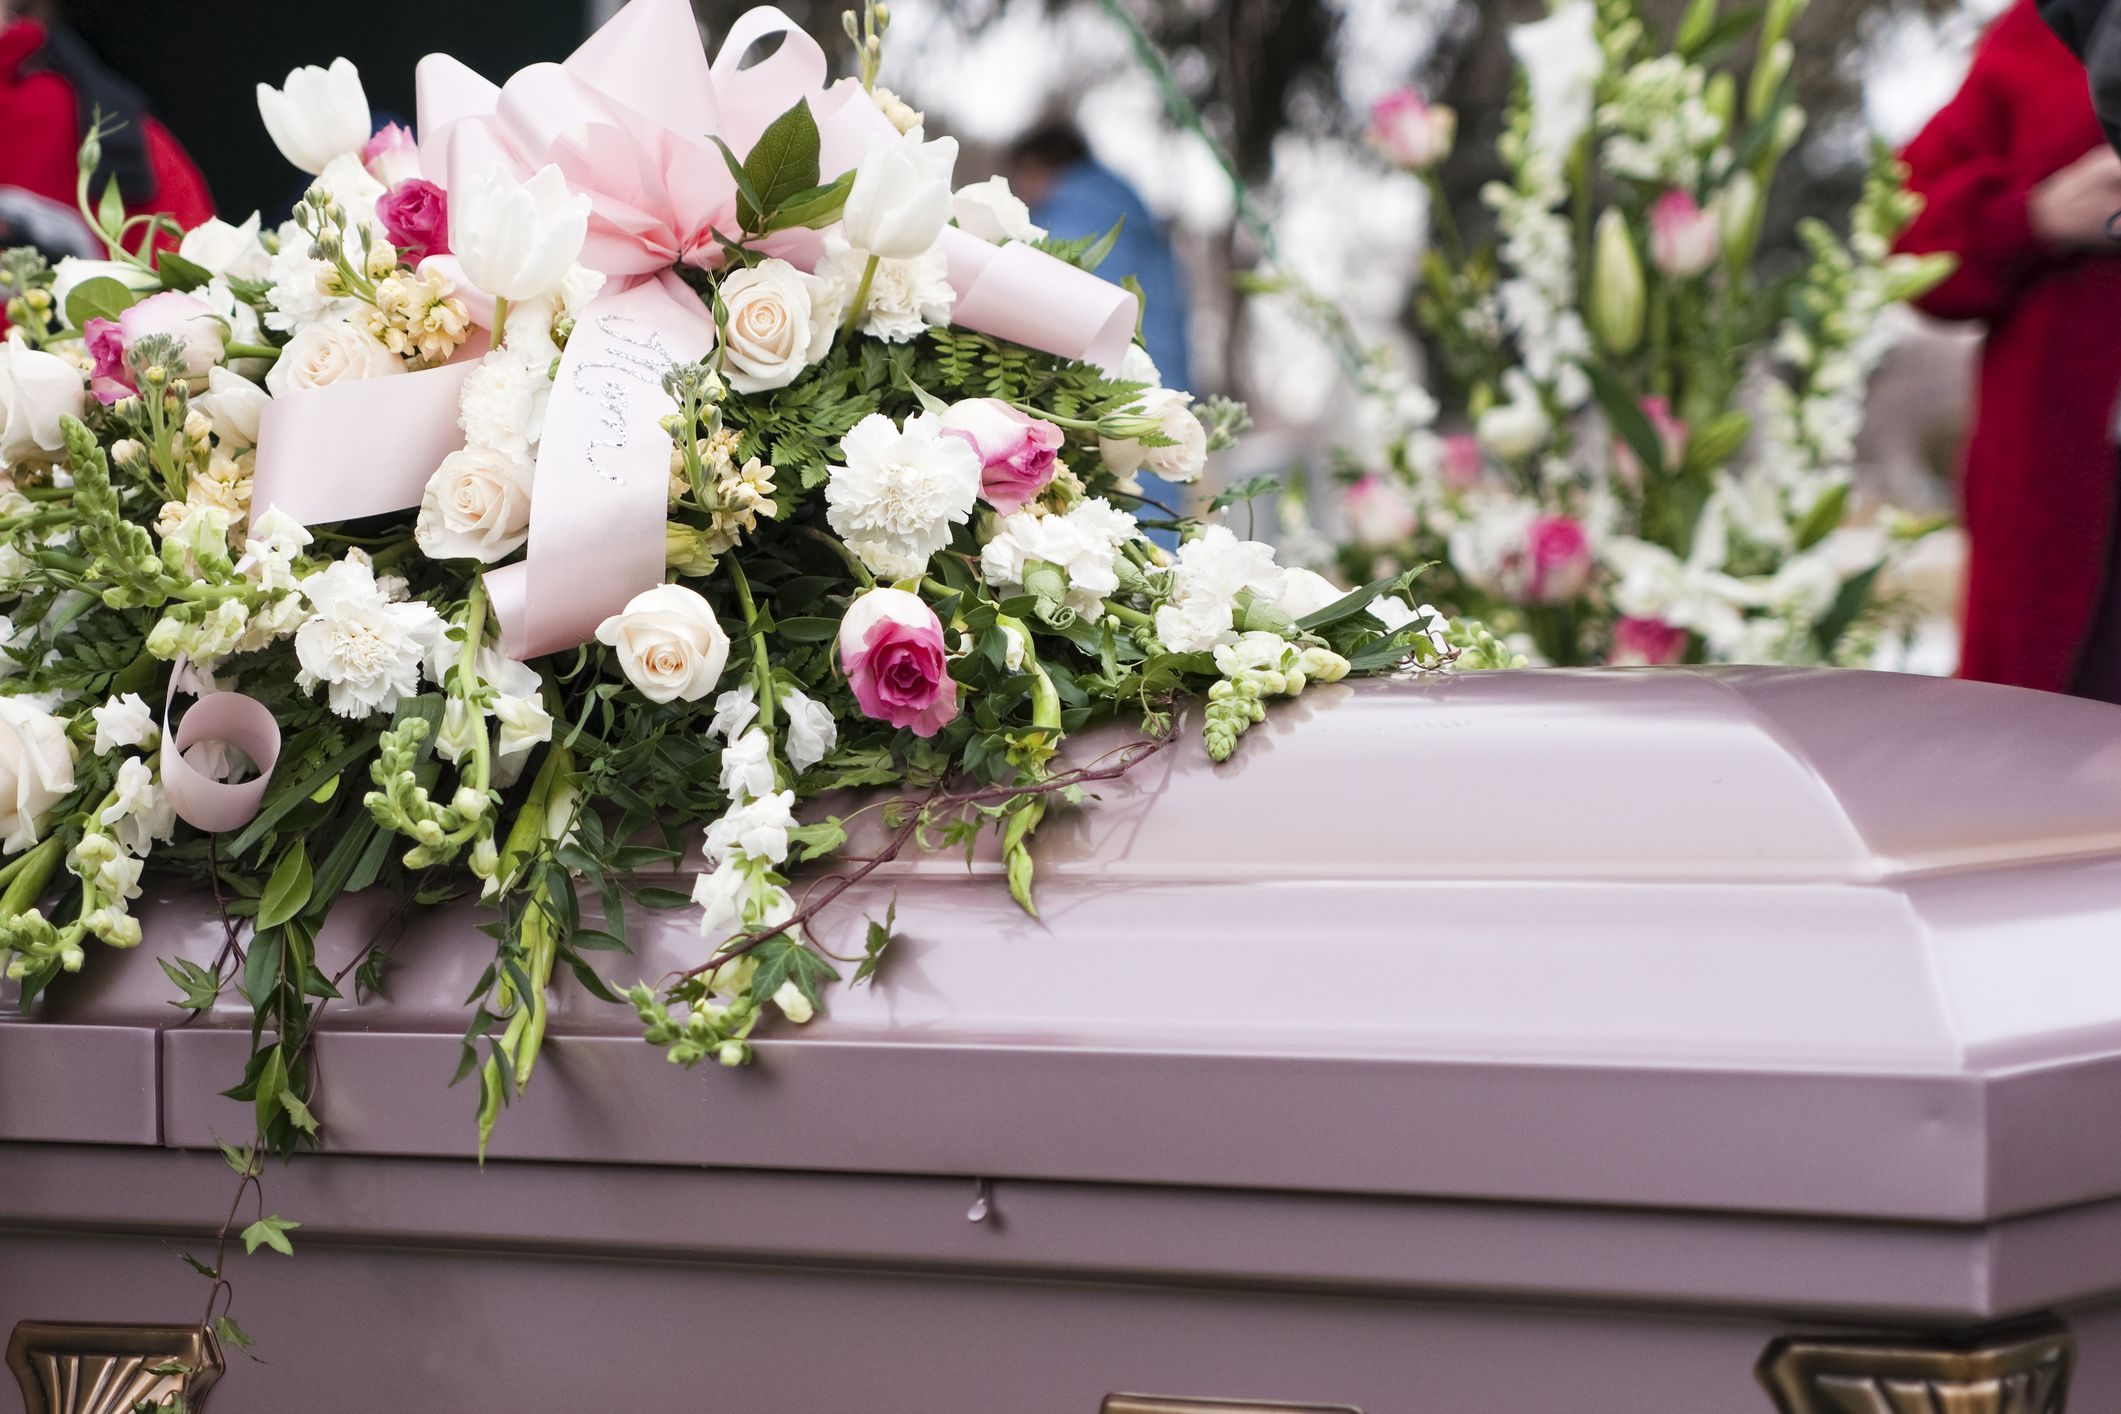 Should You Send Flowers To A Funeral